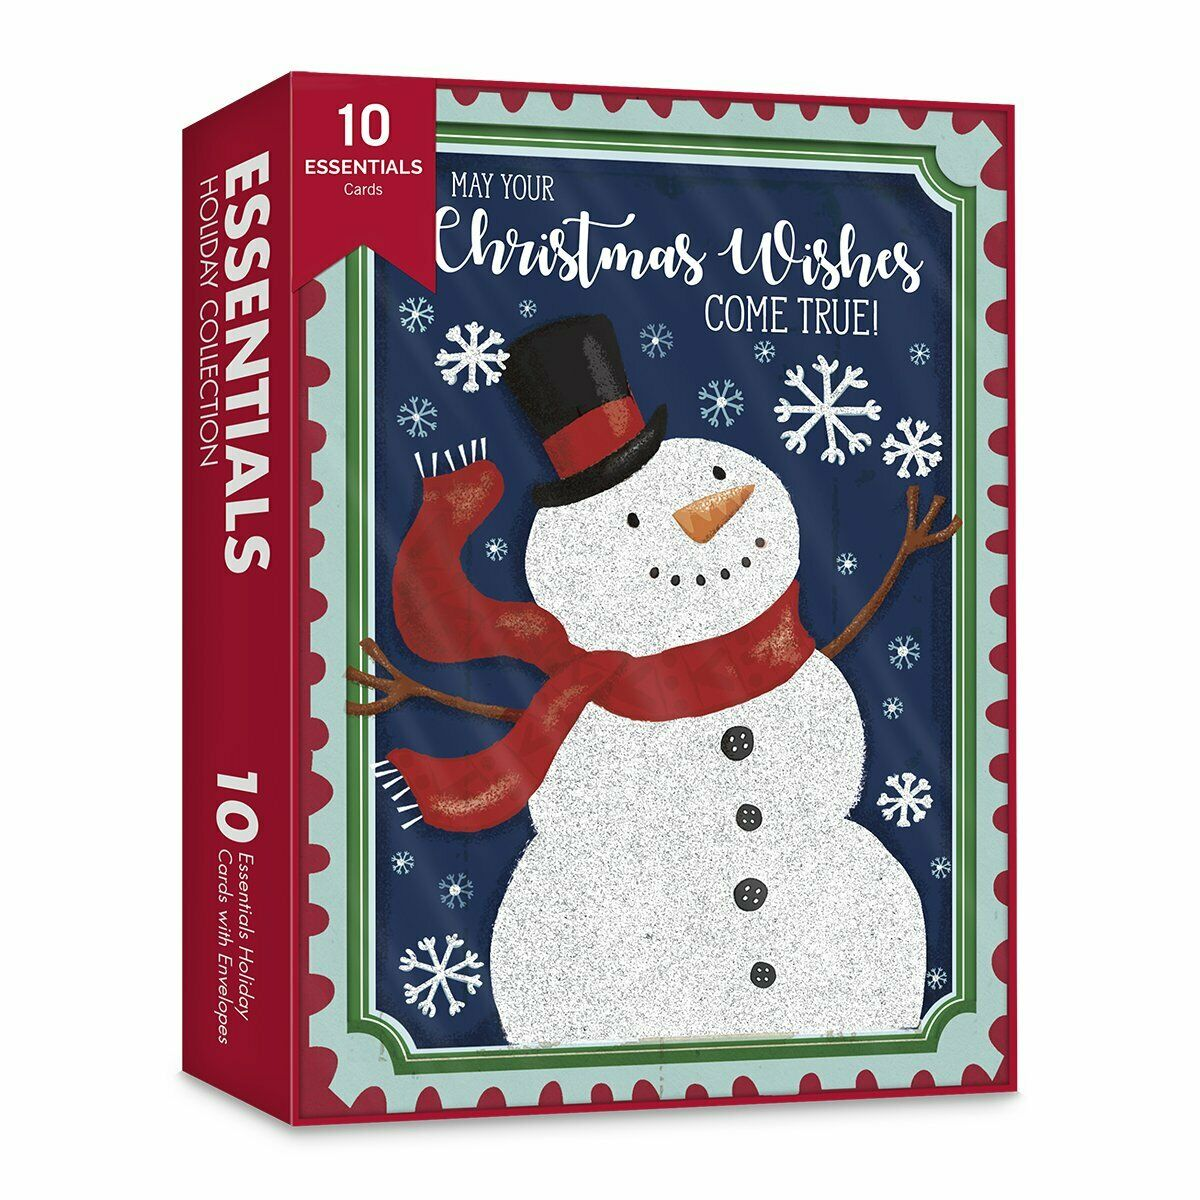 Embossed White Snowman Holiday Merry Christmas Cards Set